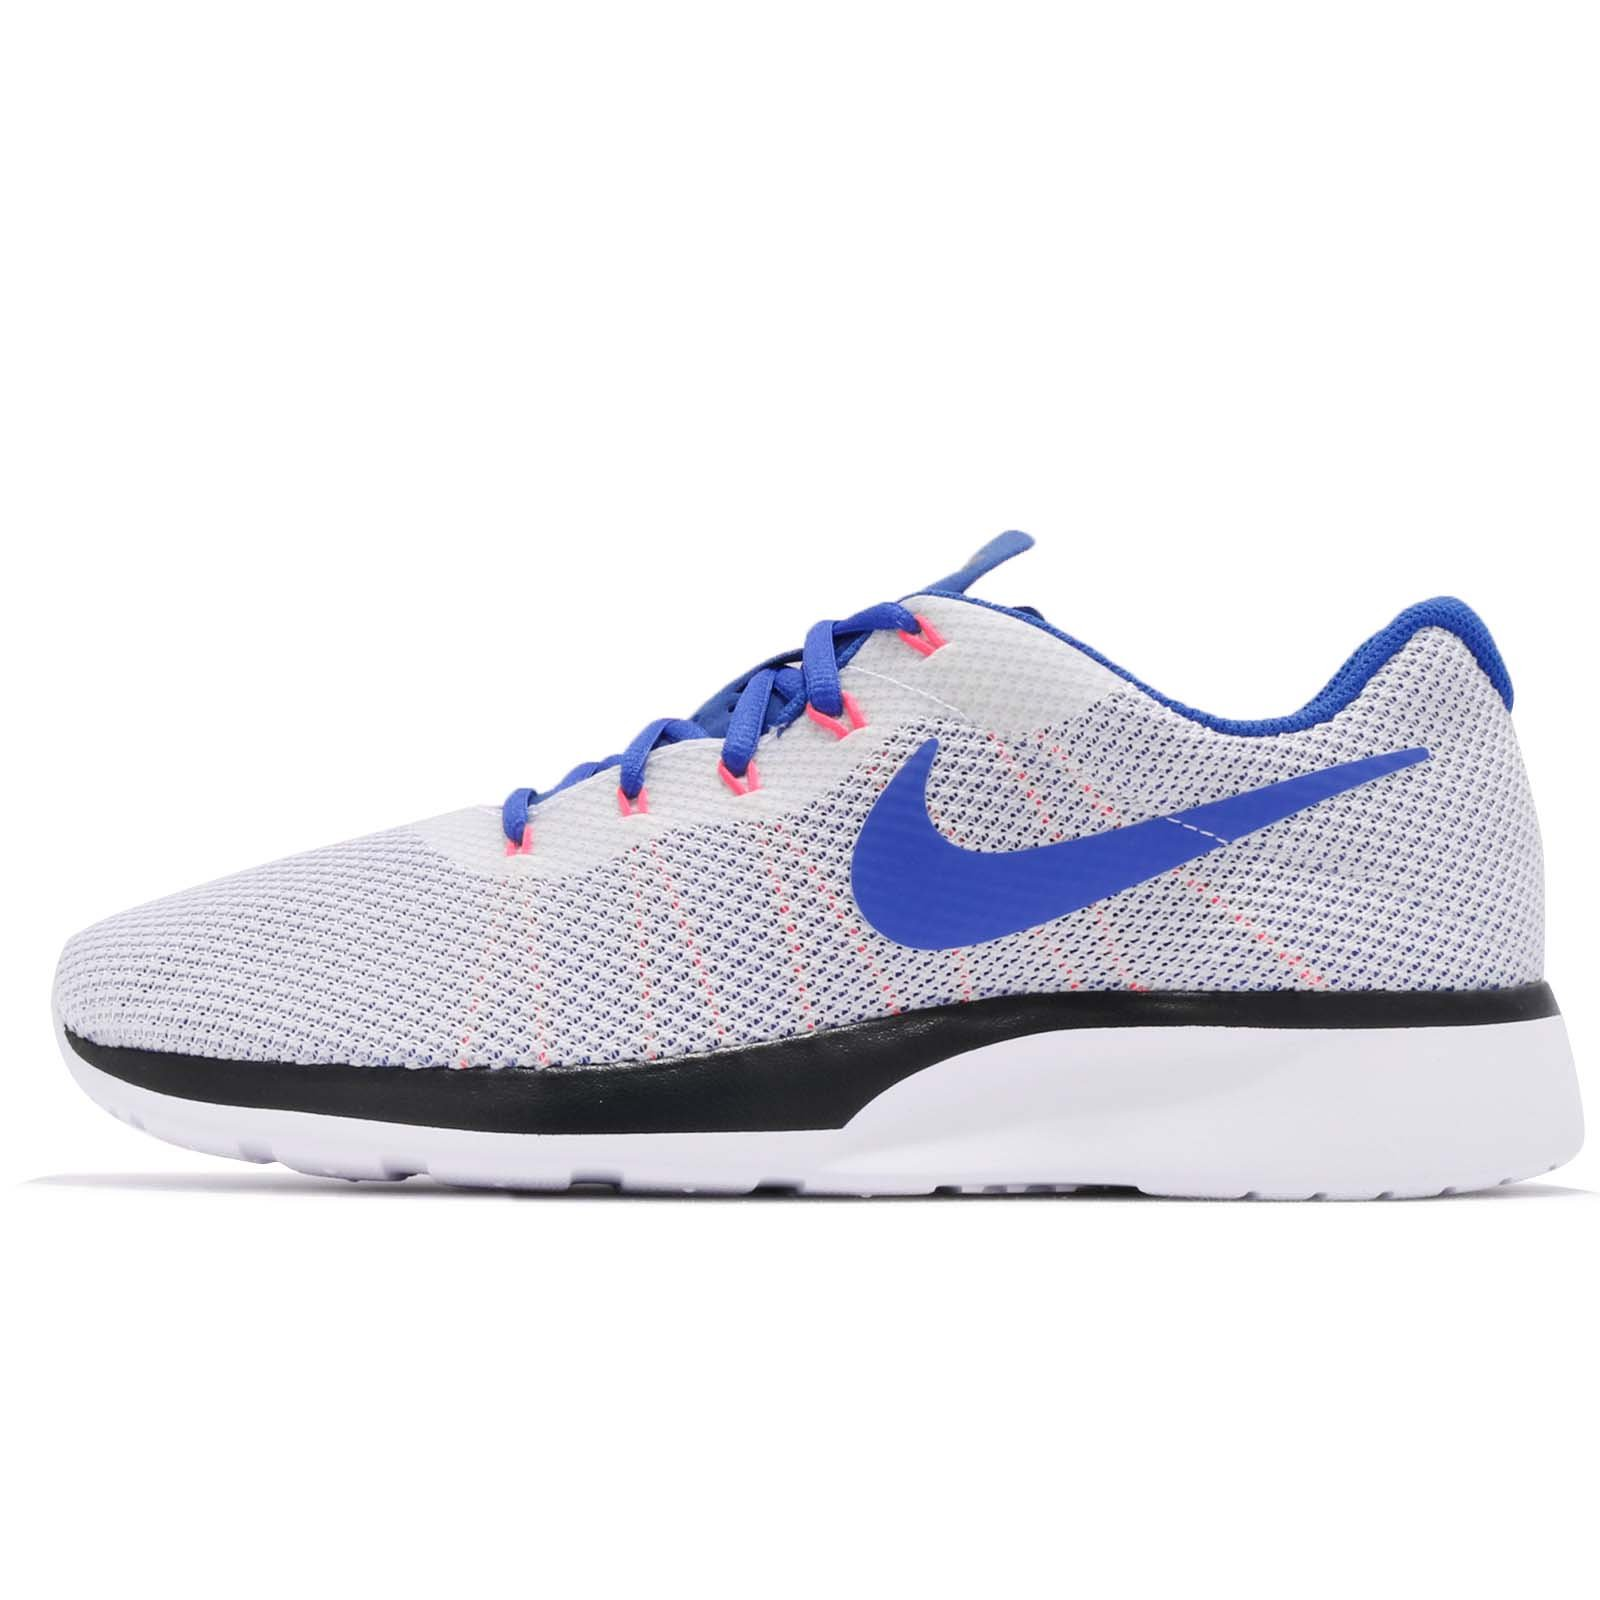 Galleon - Nike Mens Tanjun Racer WHT Ultramarine Solar RED BLK Size 10